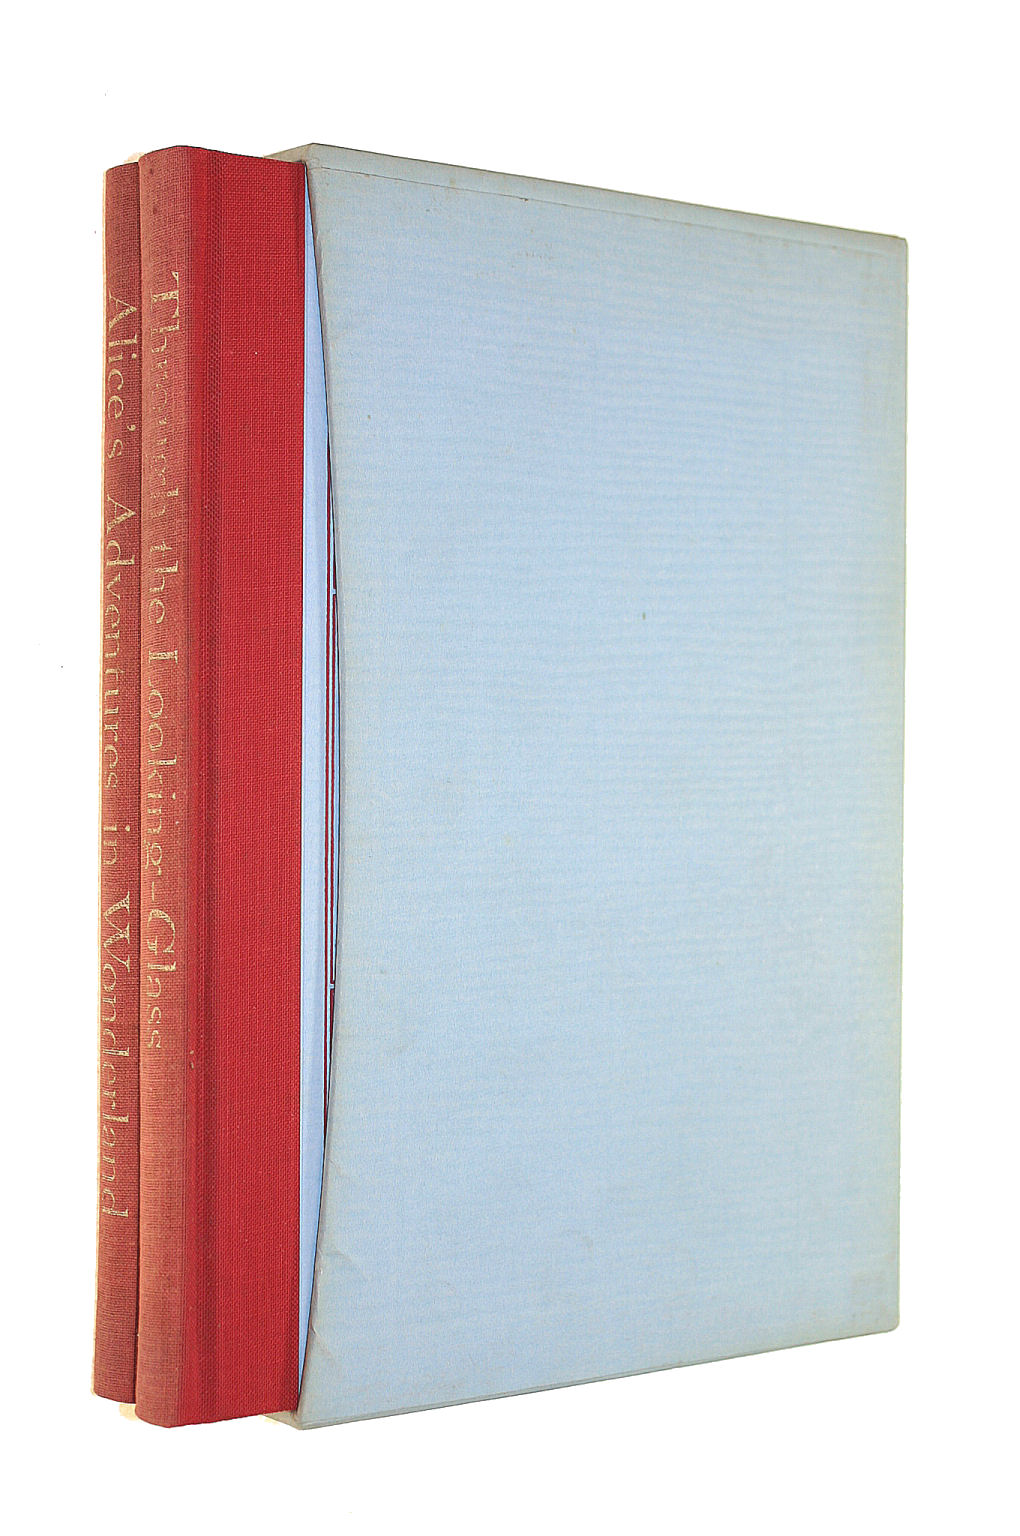 Image for Through The Looking-Glass & Alice'S Adventures In Wonderland 2 Vols. In Slipcase